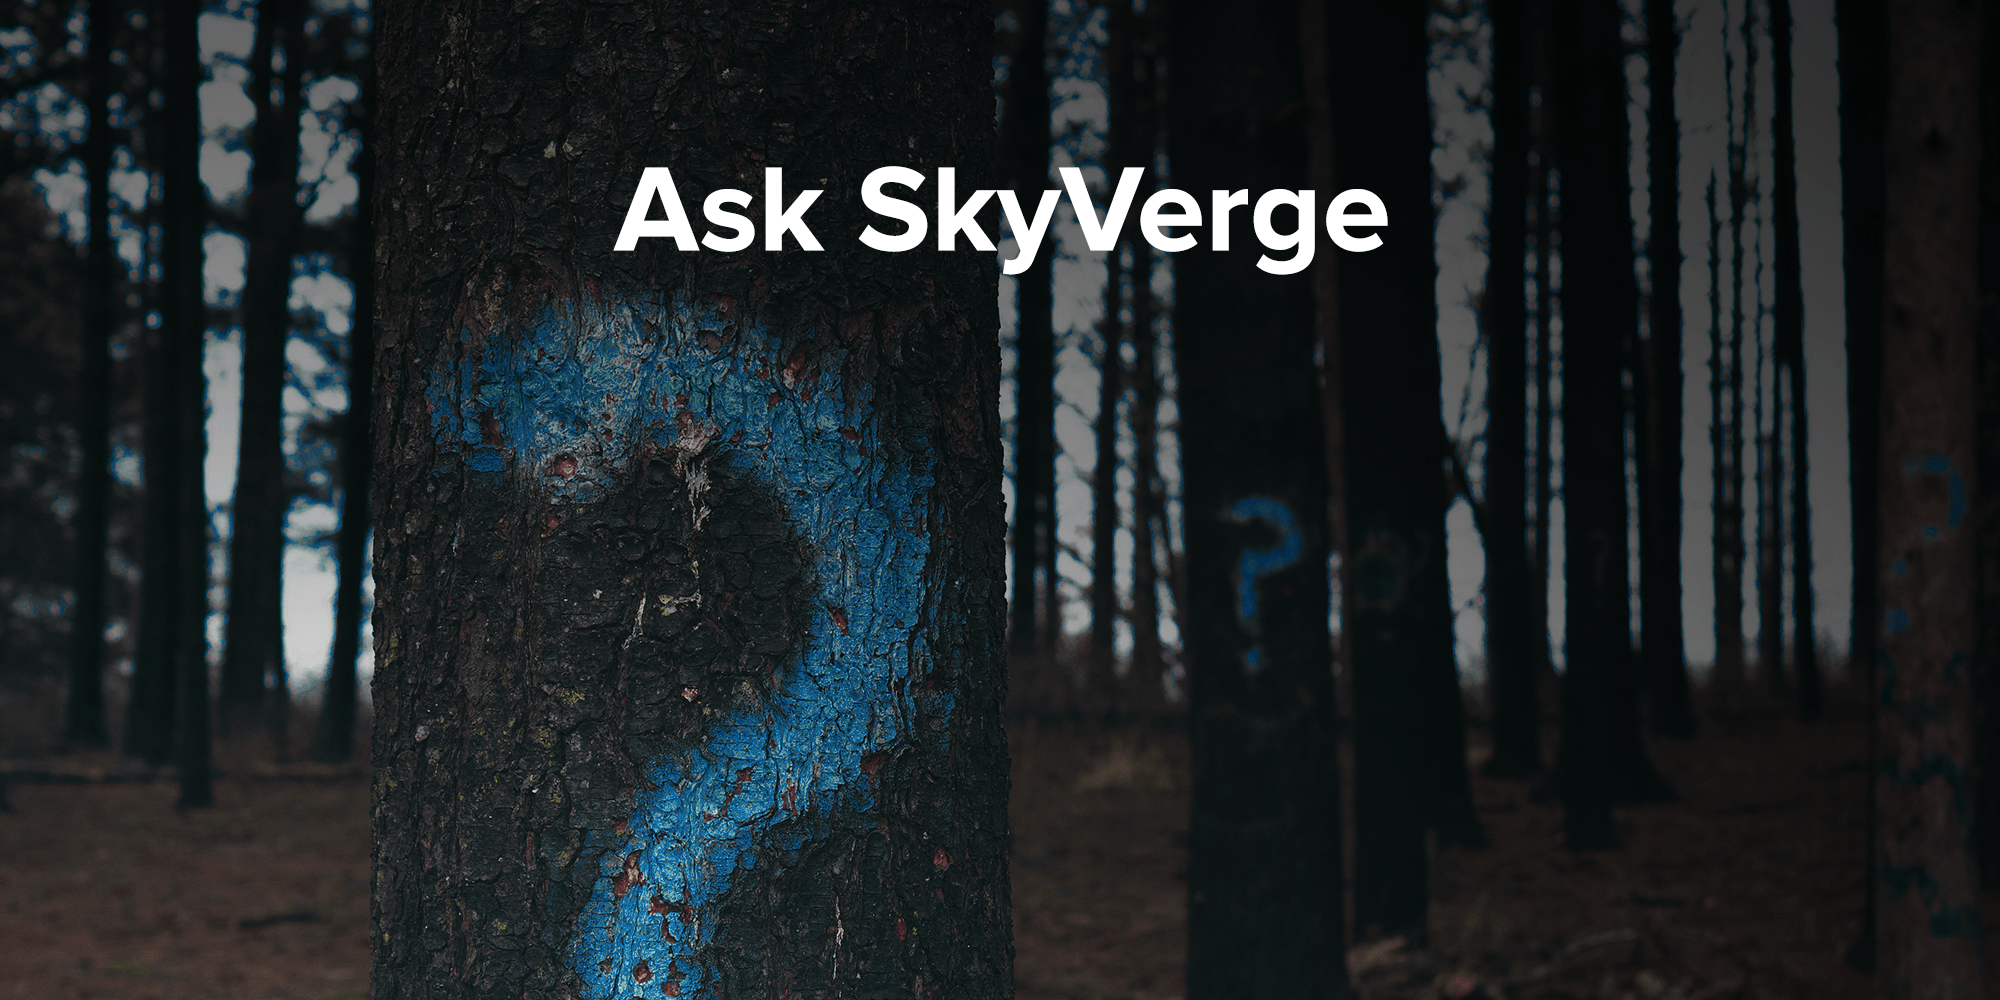 ask-skyverge